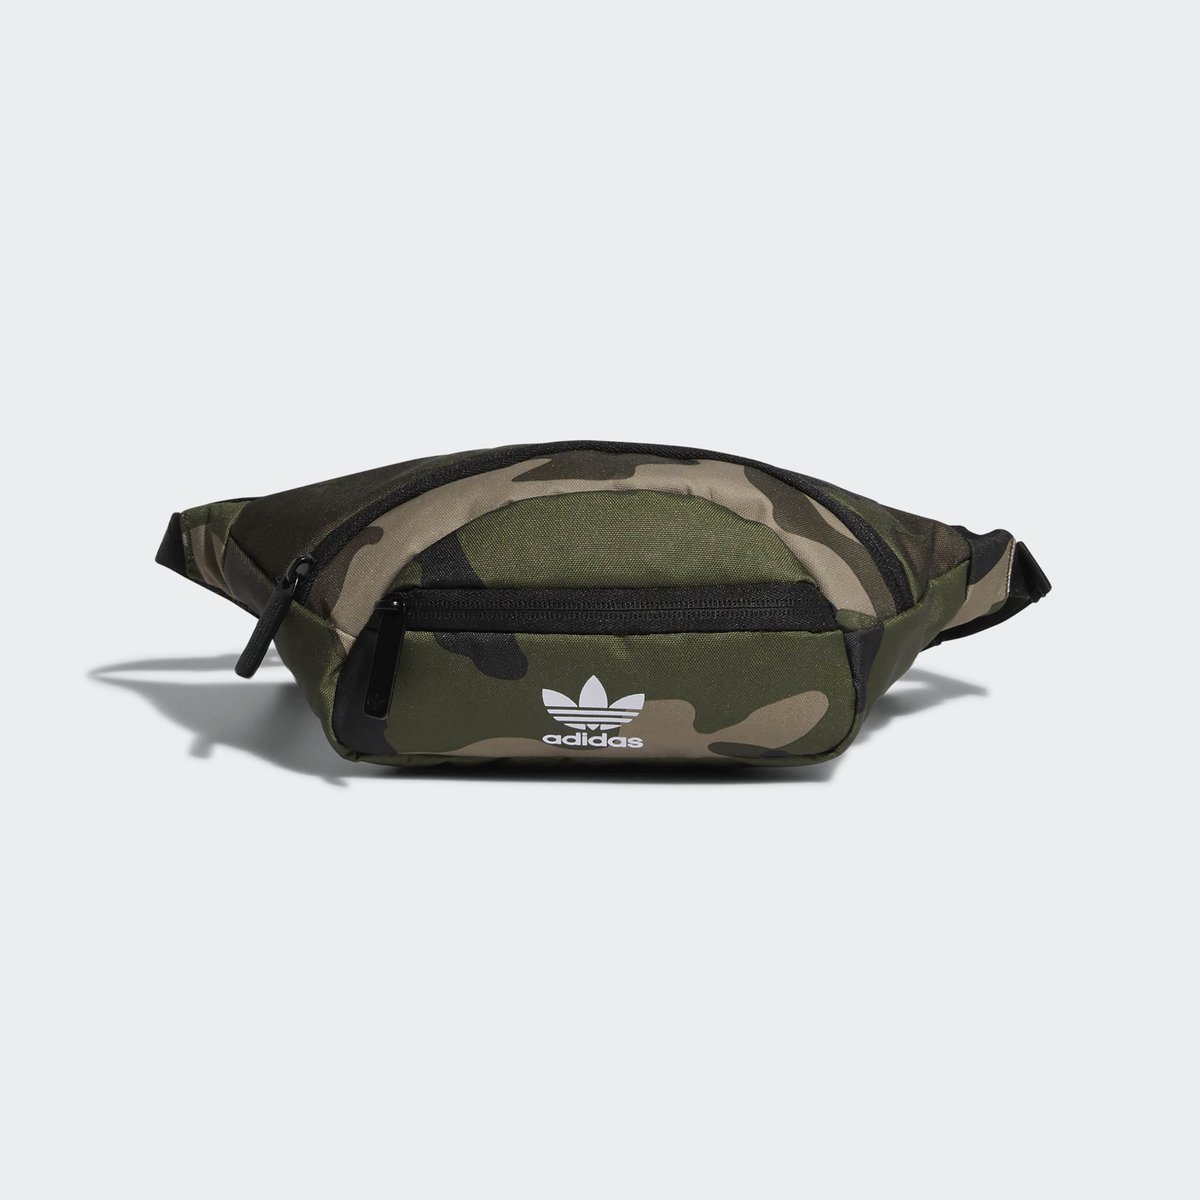 Under retail on #adidas US. adidas Trefoil Waist Pack. Retail $25. Now $17 shipped. Use code ADIFAM in cart. —&gt;  http:// bit.ly/2BW07XJ  &nbsp;  <br>http://pic.twitter.com/WntW8MMDbo